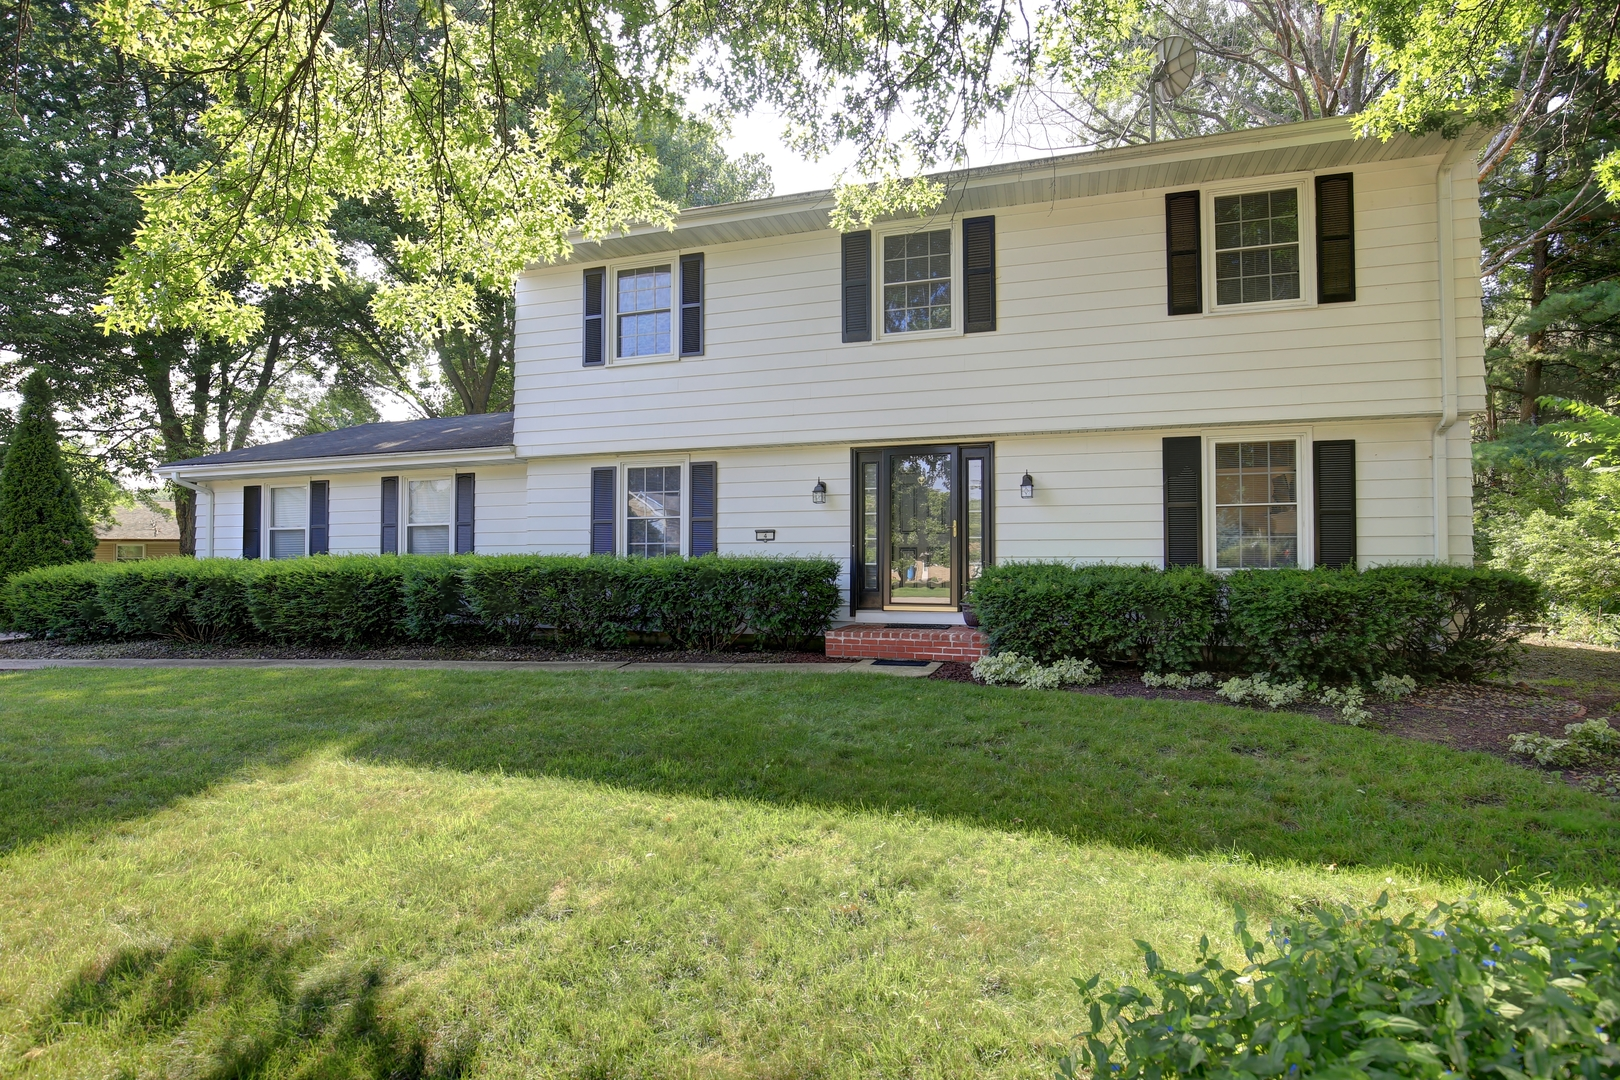 4 Kent Court, Champaign in Champaign County, IL 61820 Home for Sale